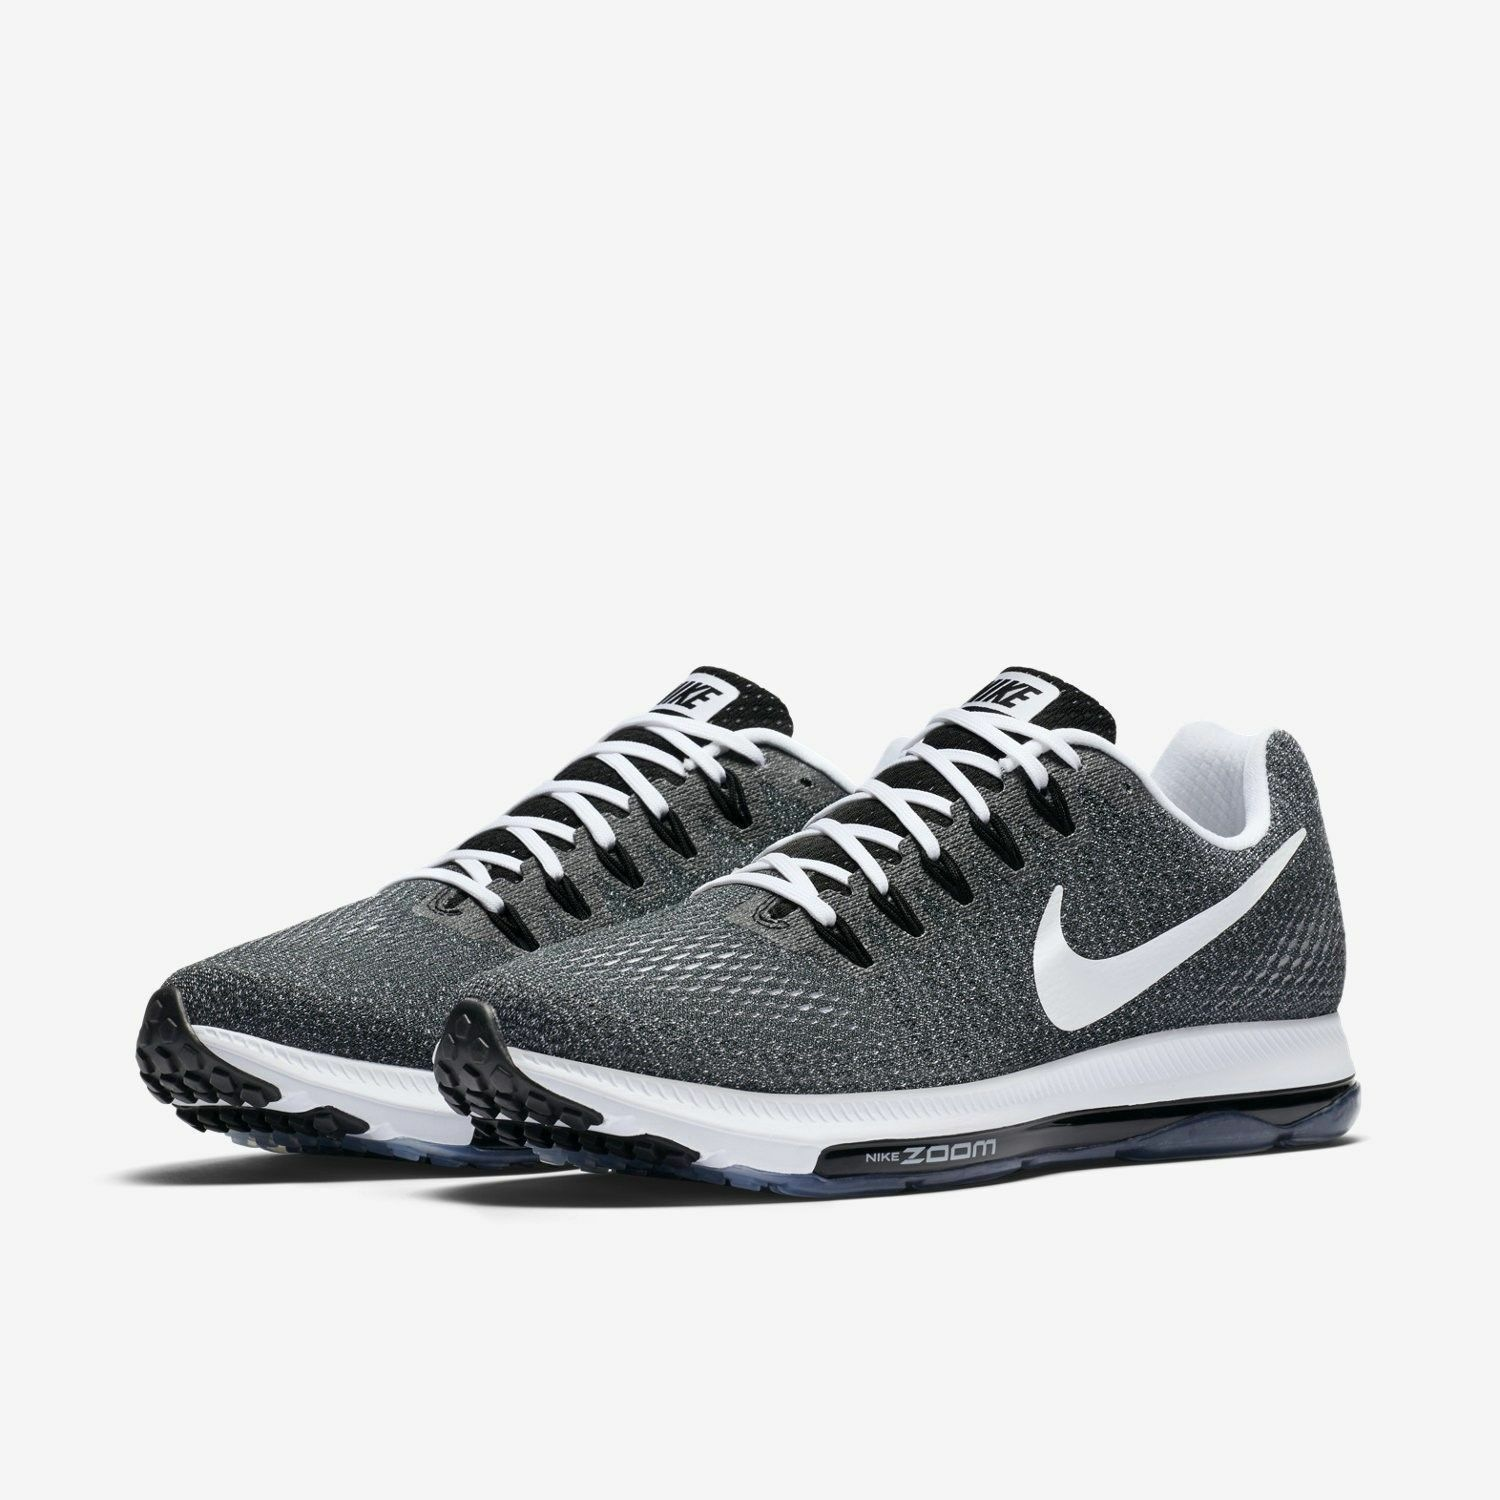 AUTHENTIC NIKE ZOOM ALL OUT  Gris  blanc noir 889123 001 homme Taille